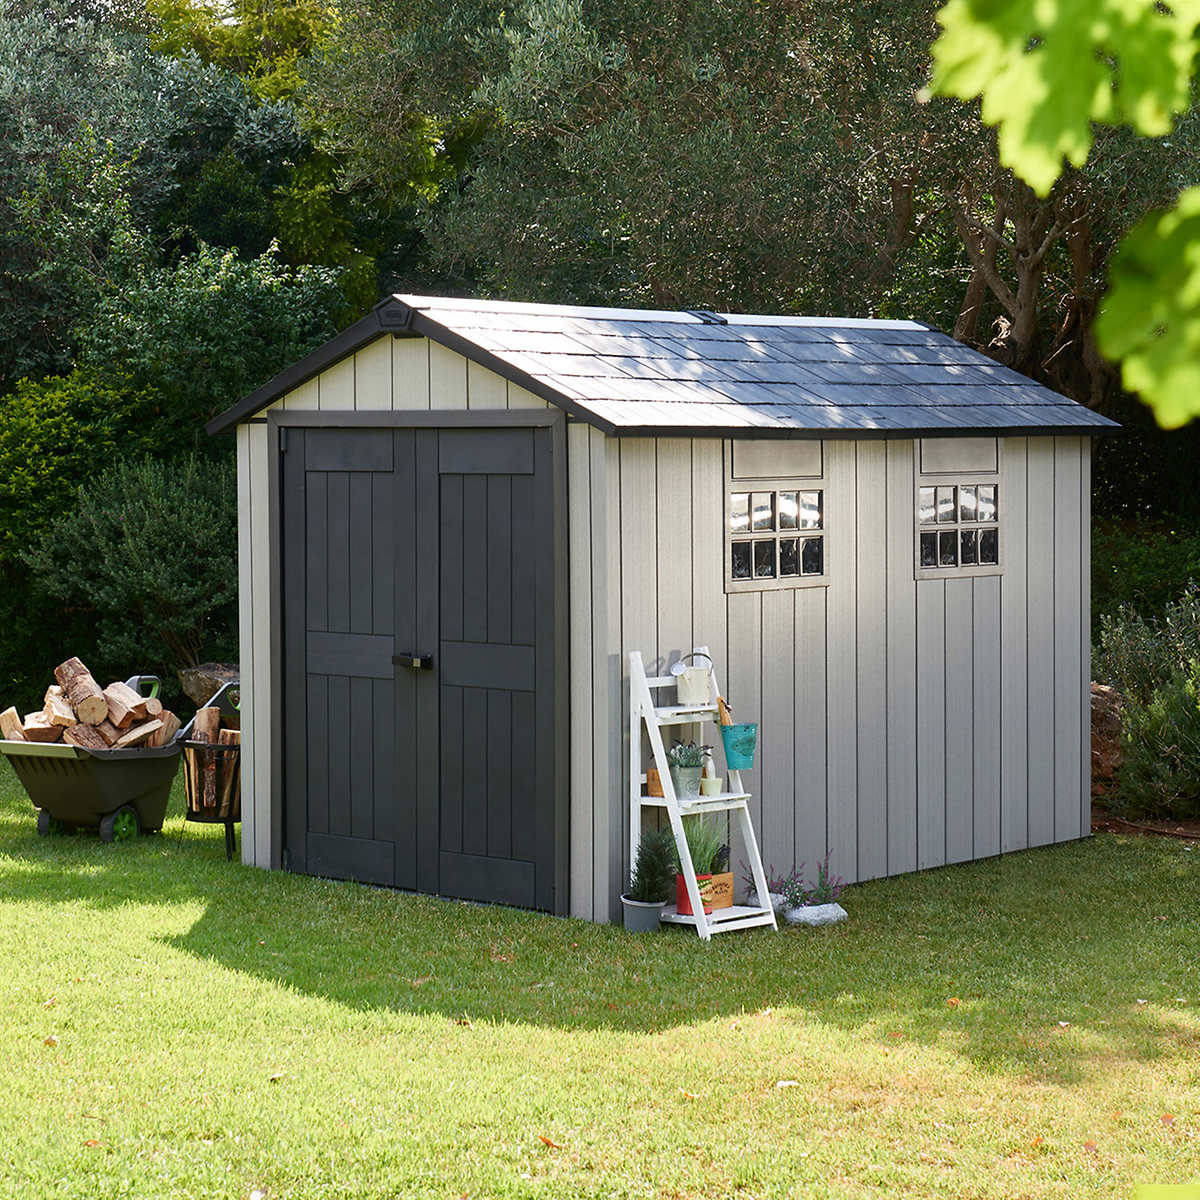 A-simple-gray-shed-with-a-familiar-design